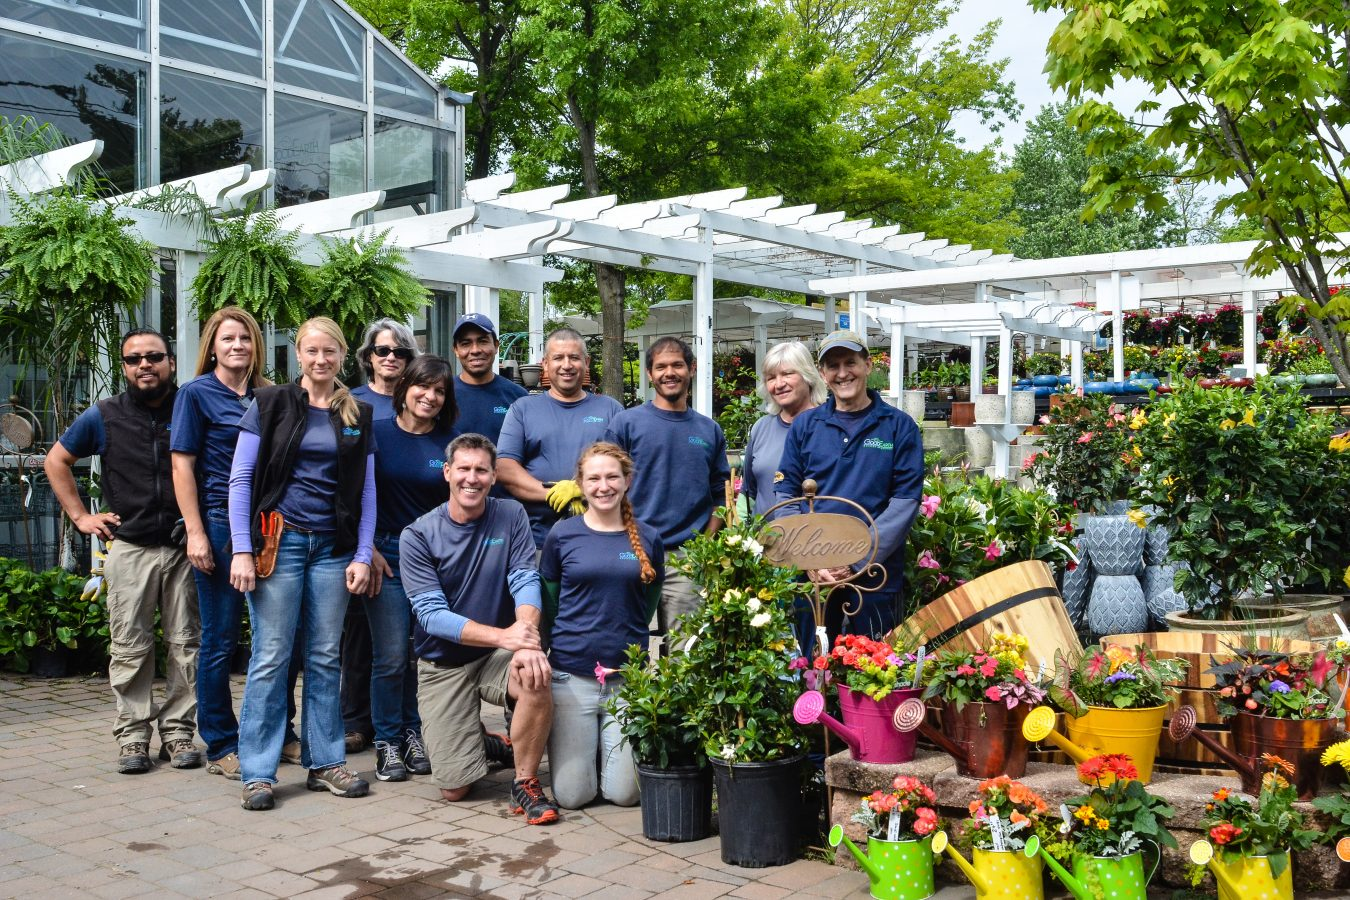 meet our friendly and helpful team of experts - Good Earth Garden Center